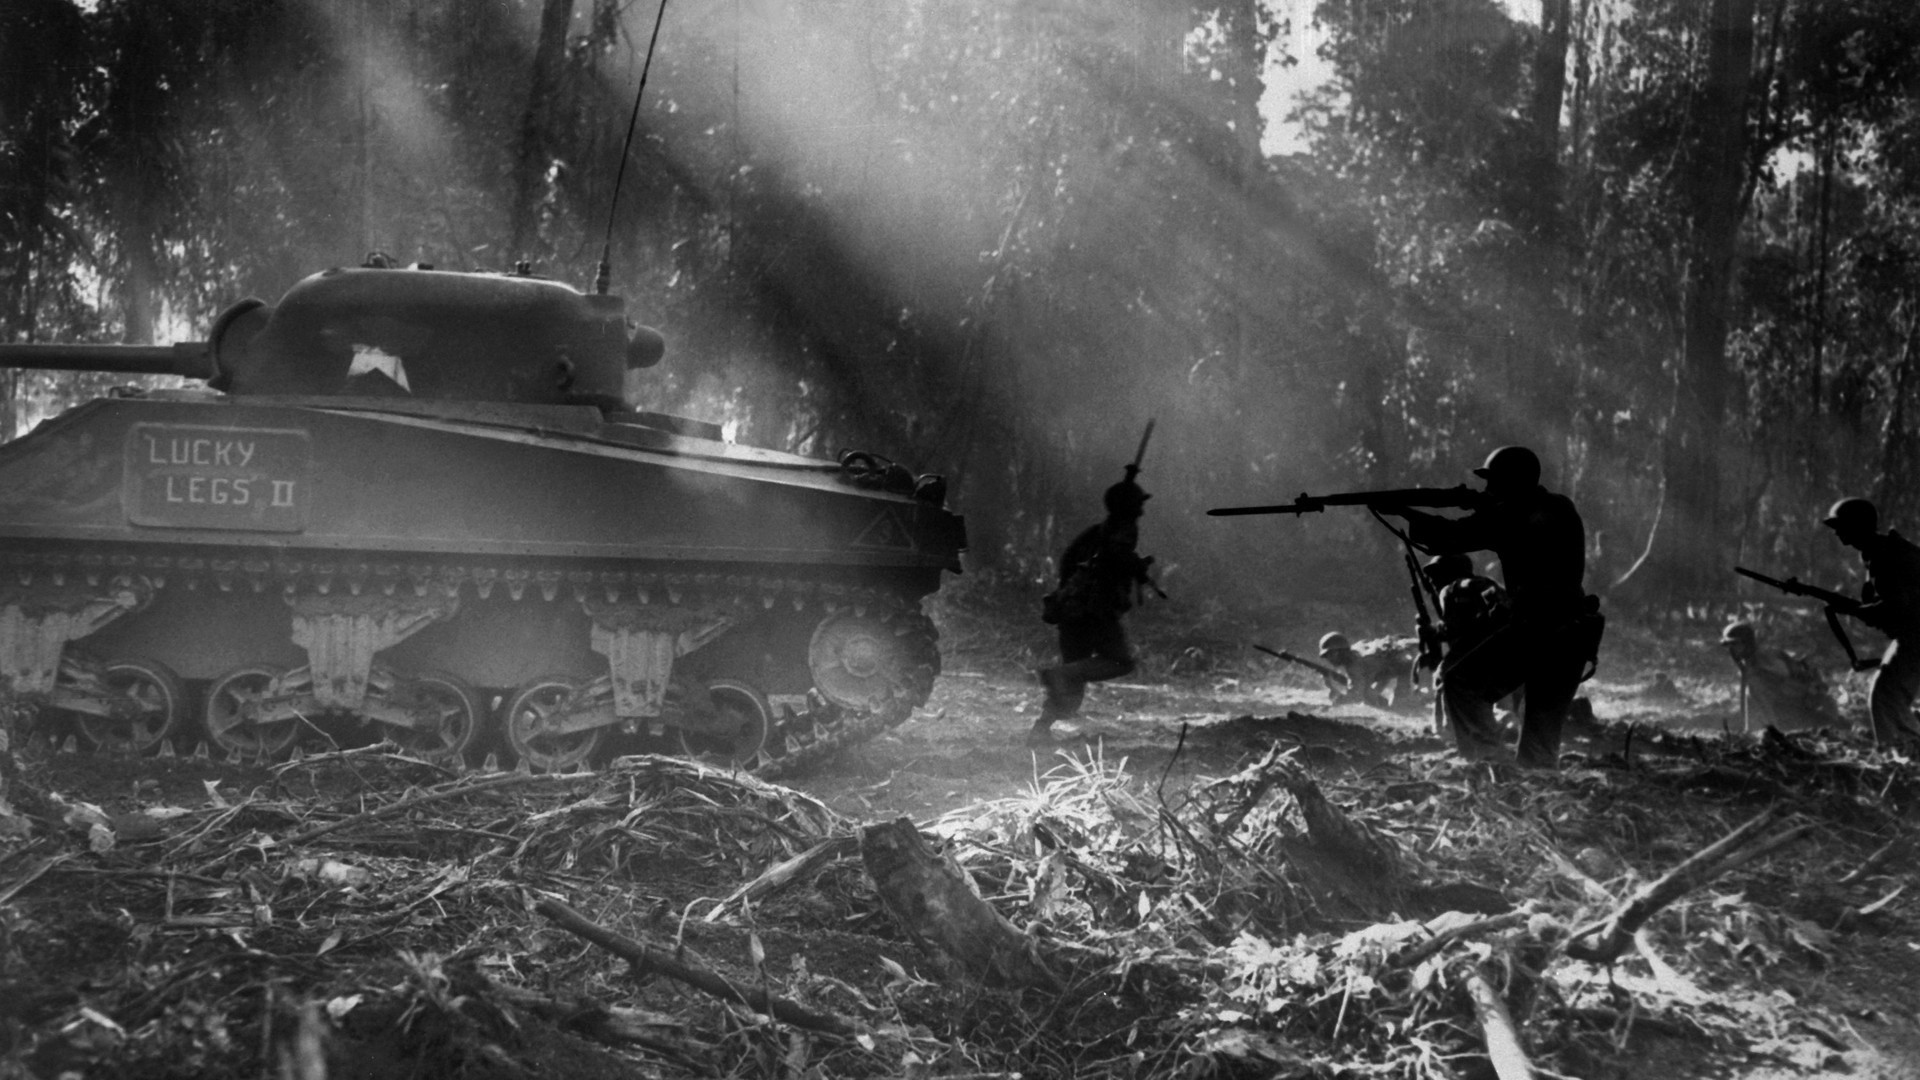 1920x1080 Soldiers war guns army sherman tanks us marines corps us army soldat world  war ii monochrome